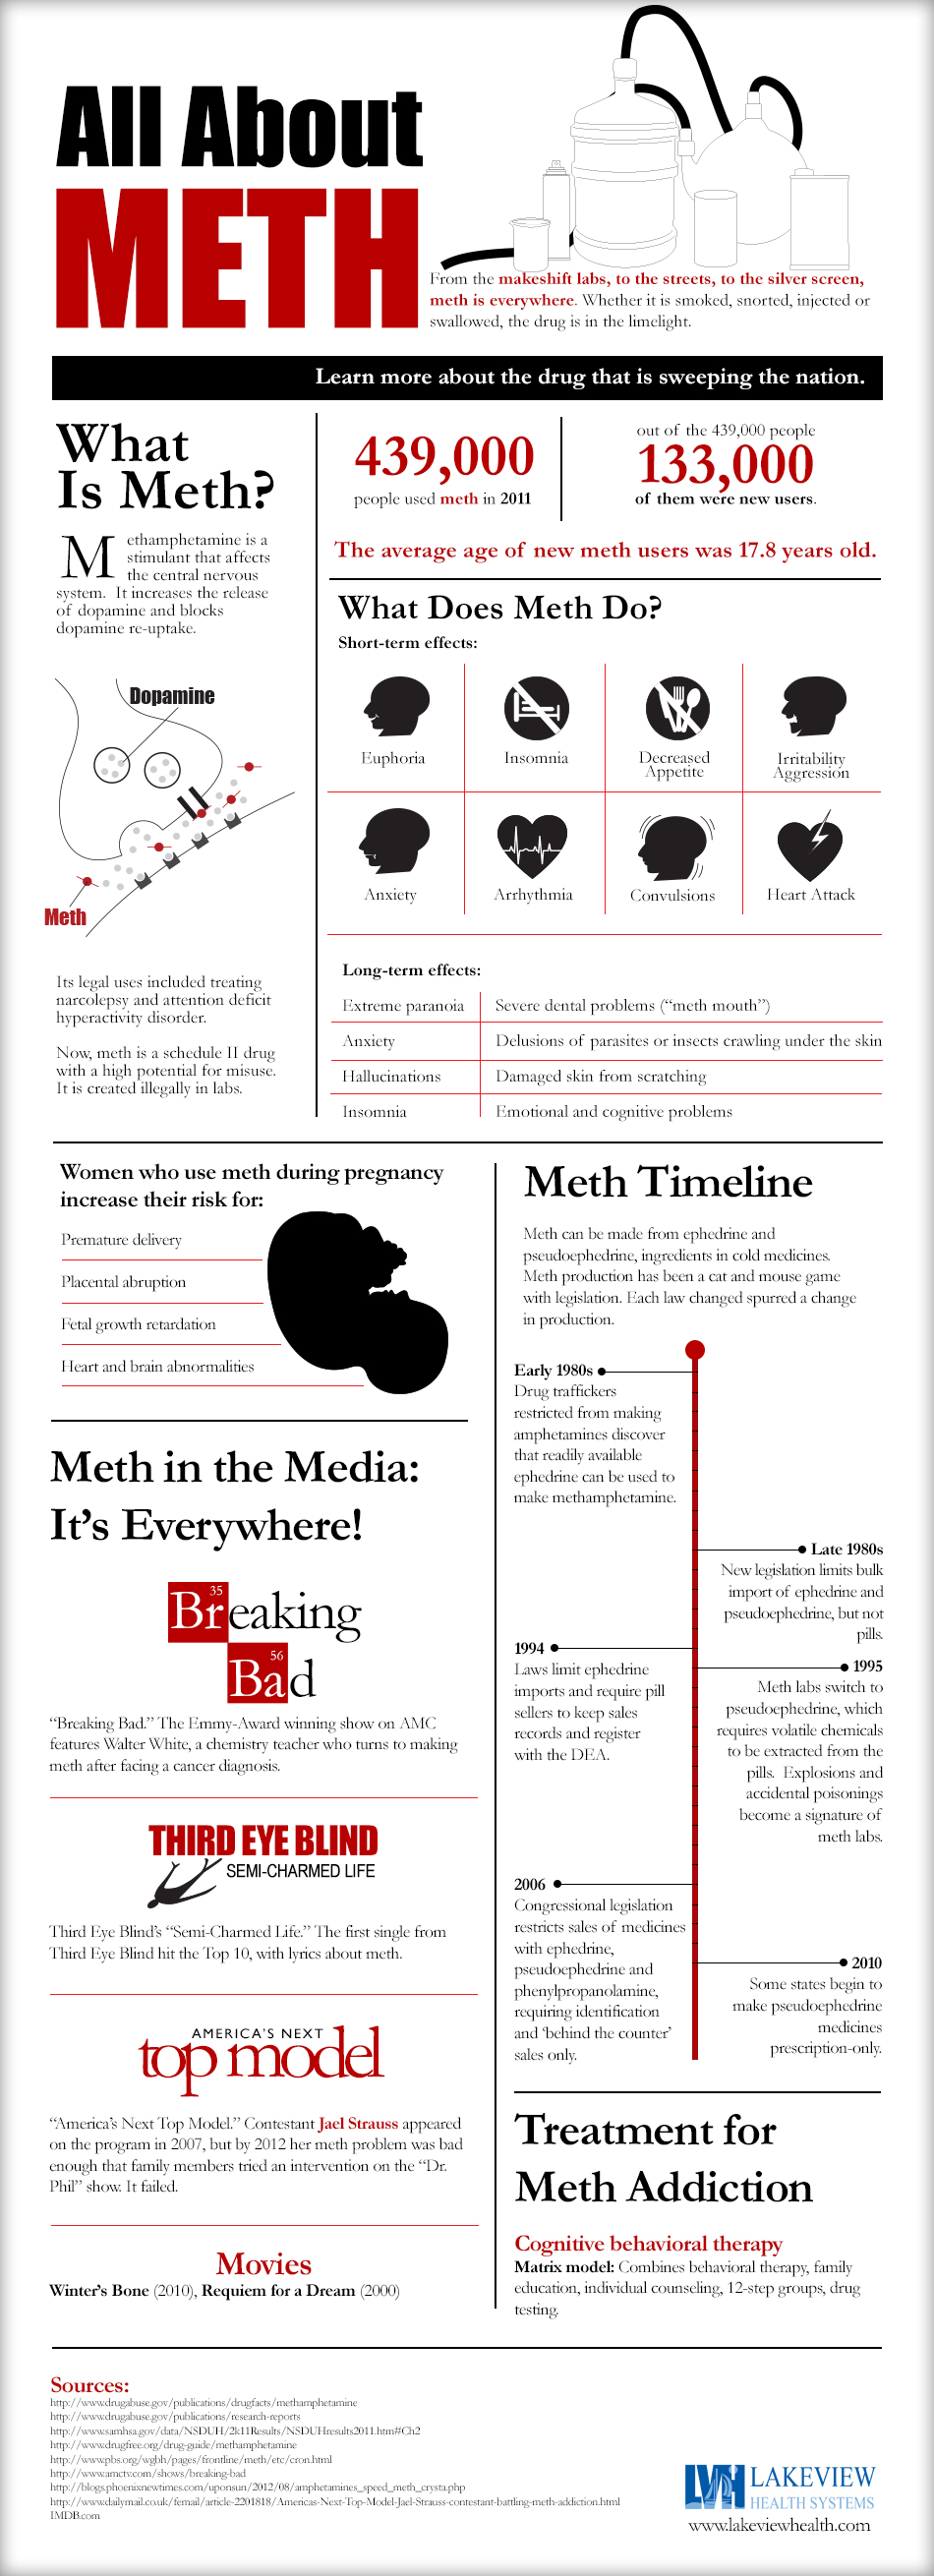 what-is-methamphetamine-all-about-meth_521630c5cc604